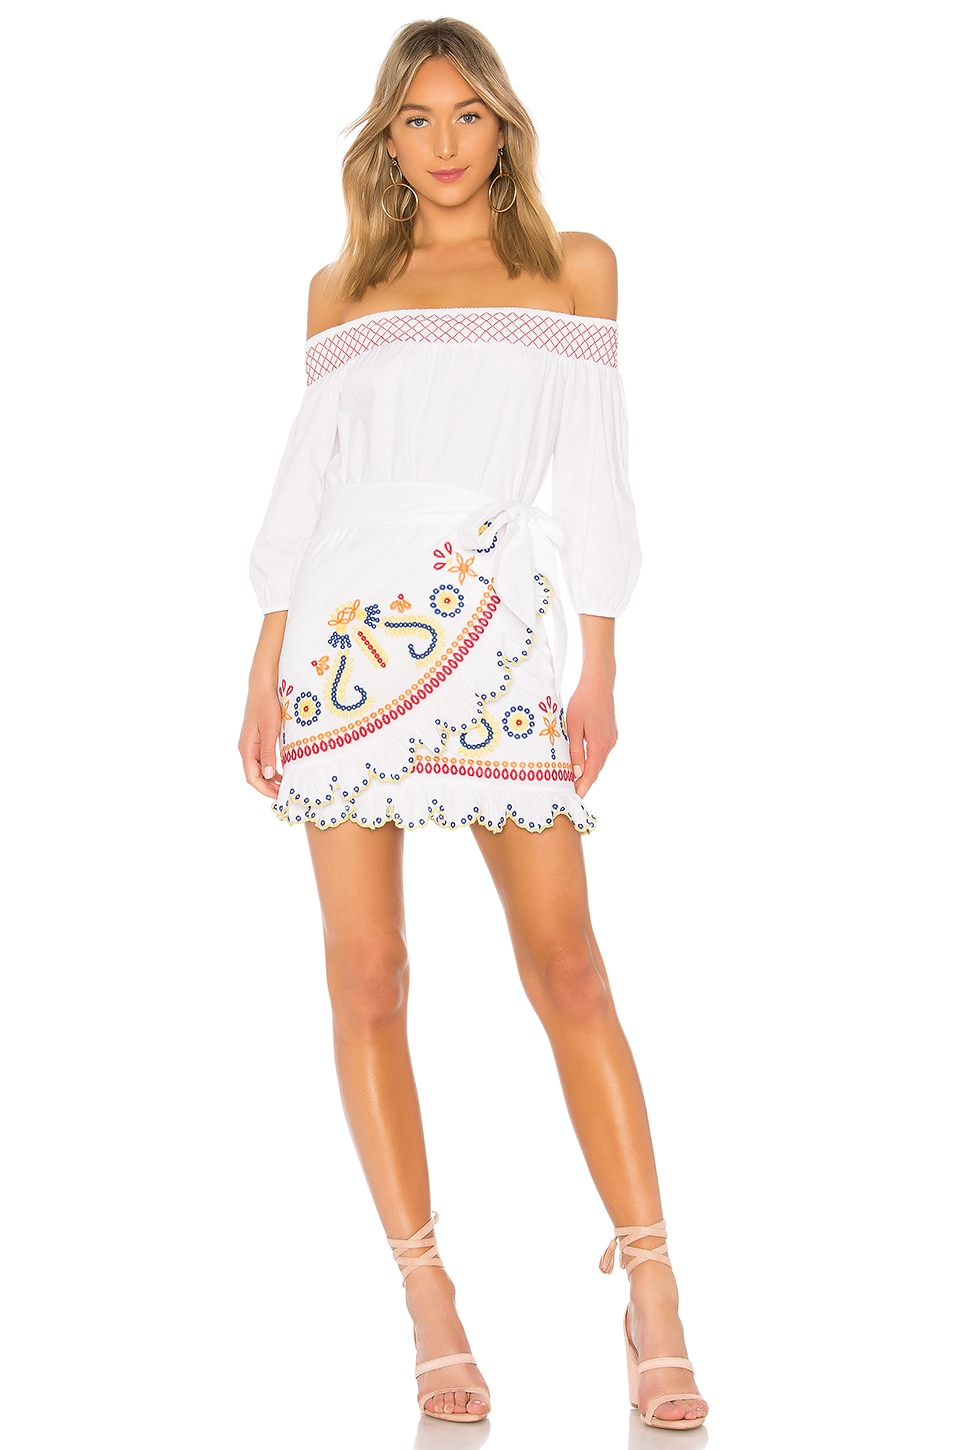 Tularosa Maida Ruffle Dress in Marshmallow